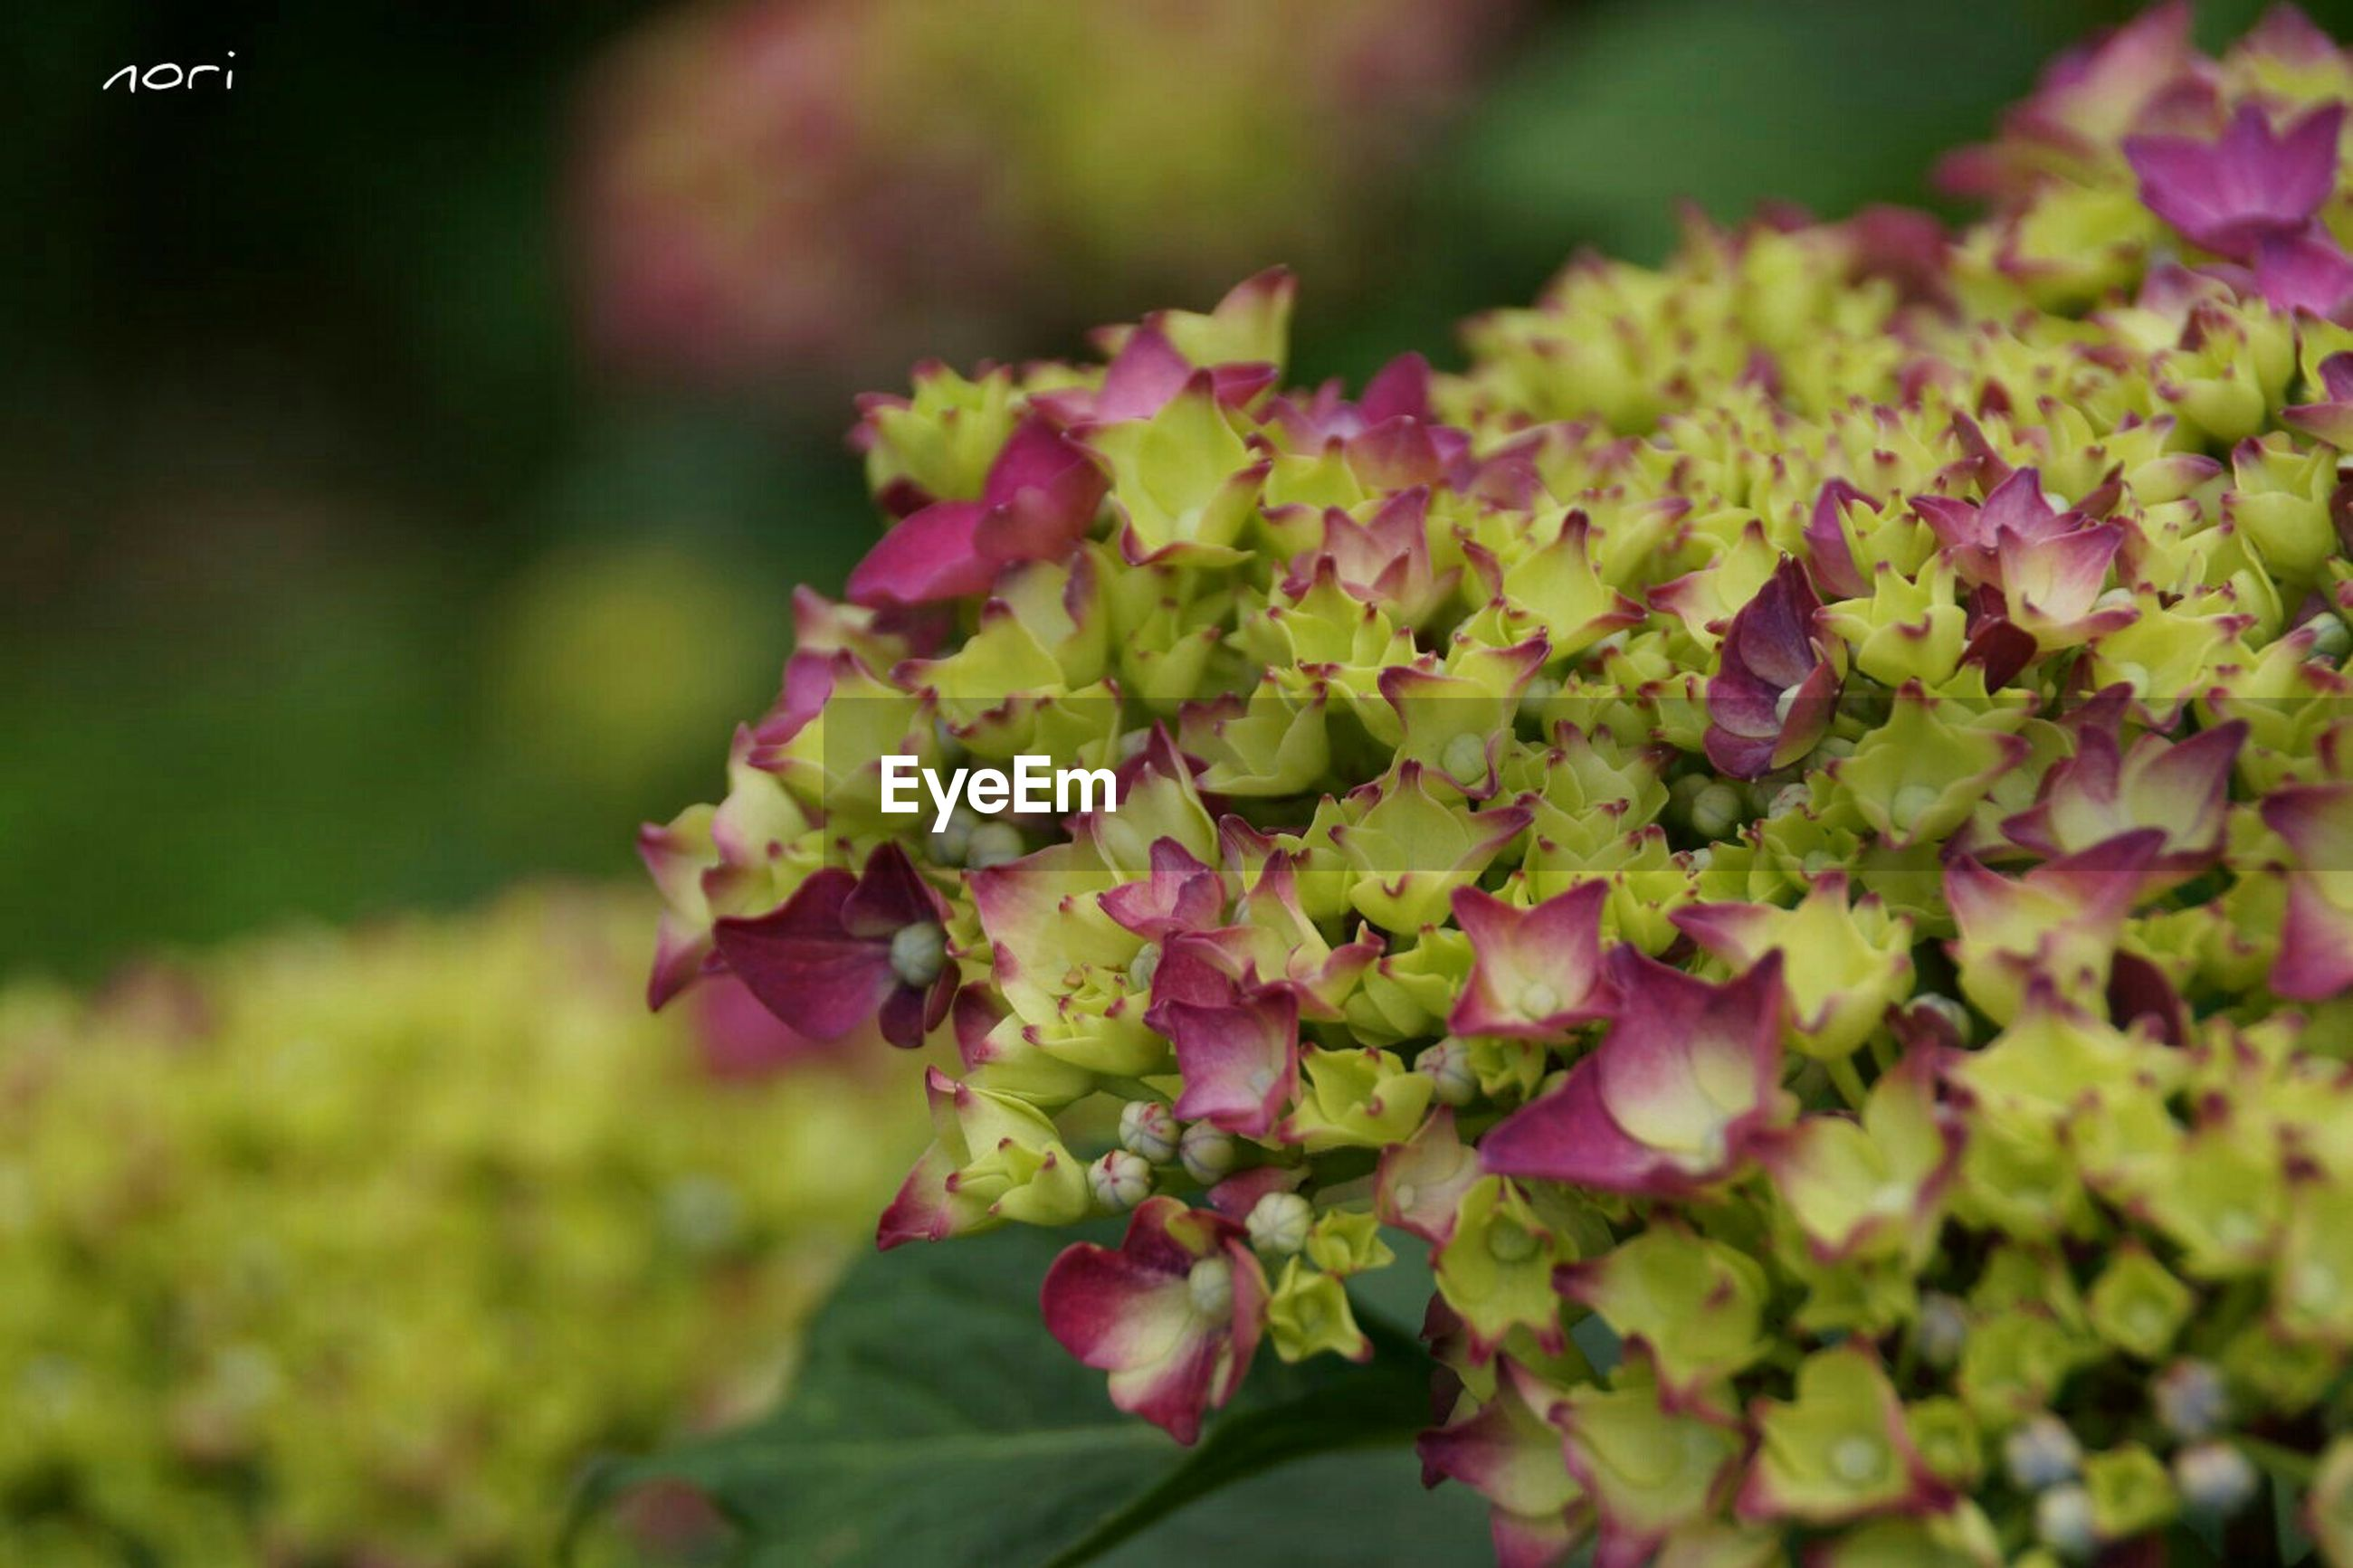 flower, growth, freshness, focus on foreground, beauty in nature, fragility, close-up, nature, selective focus, plant, leaf, petal, pink color, blooming, outdoors, park - man made space, day, season, no people, in bloom